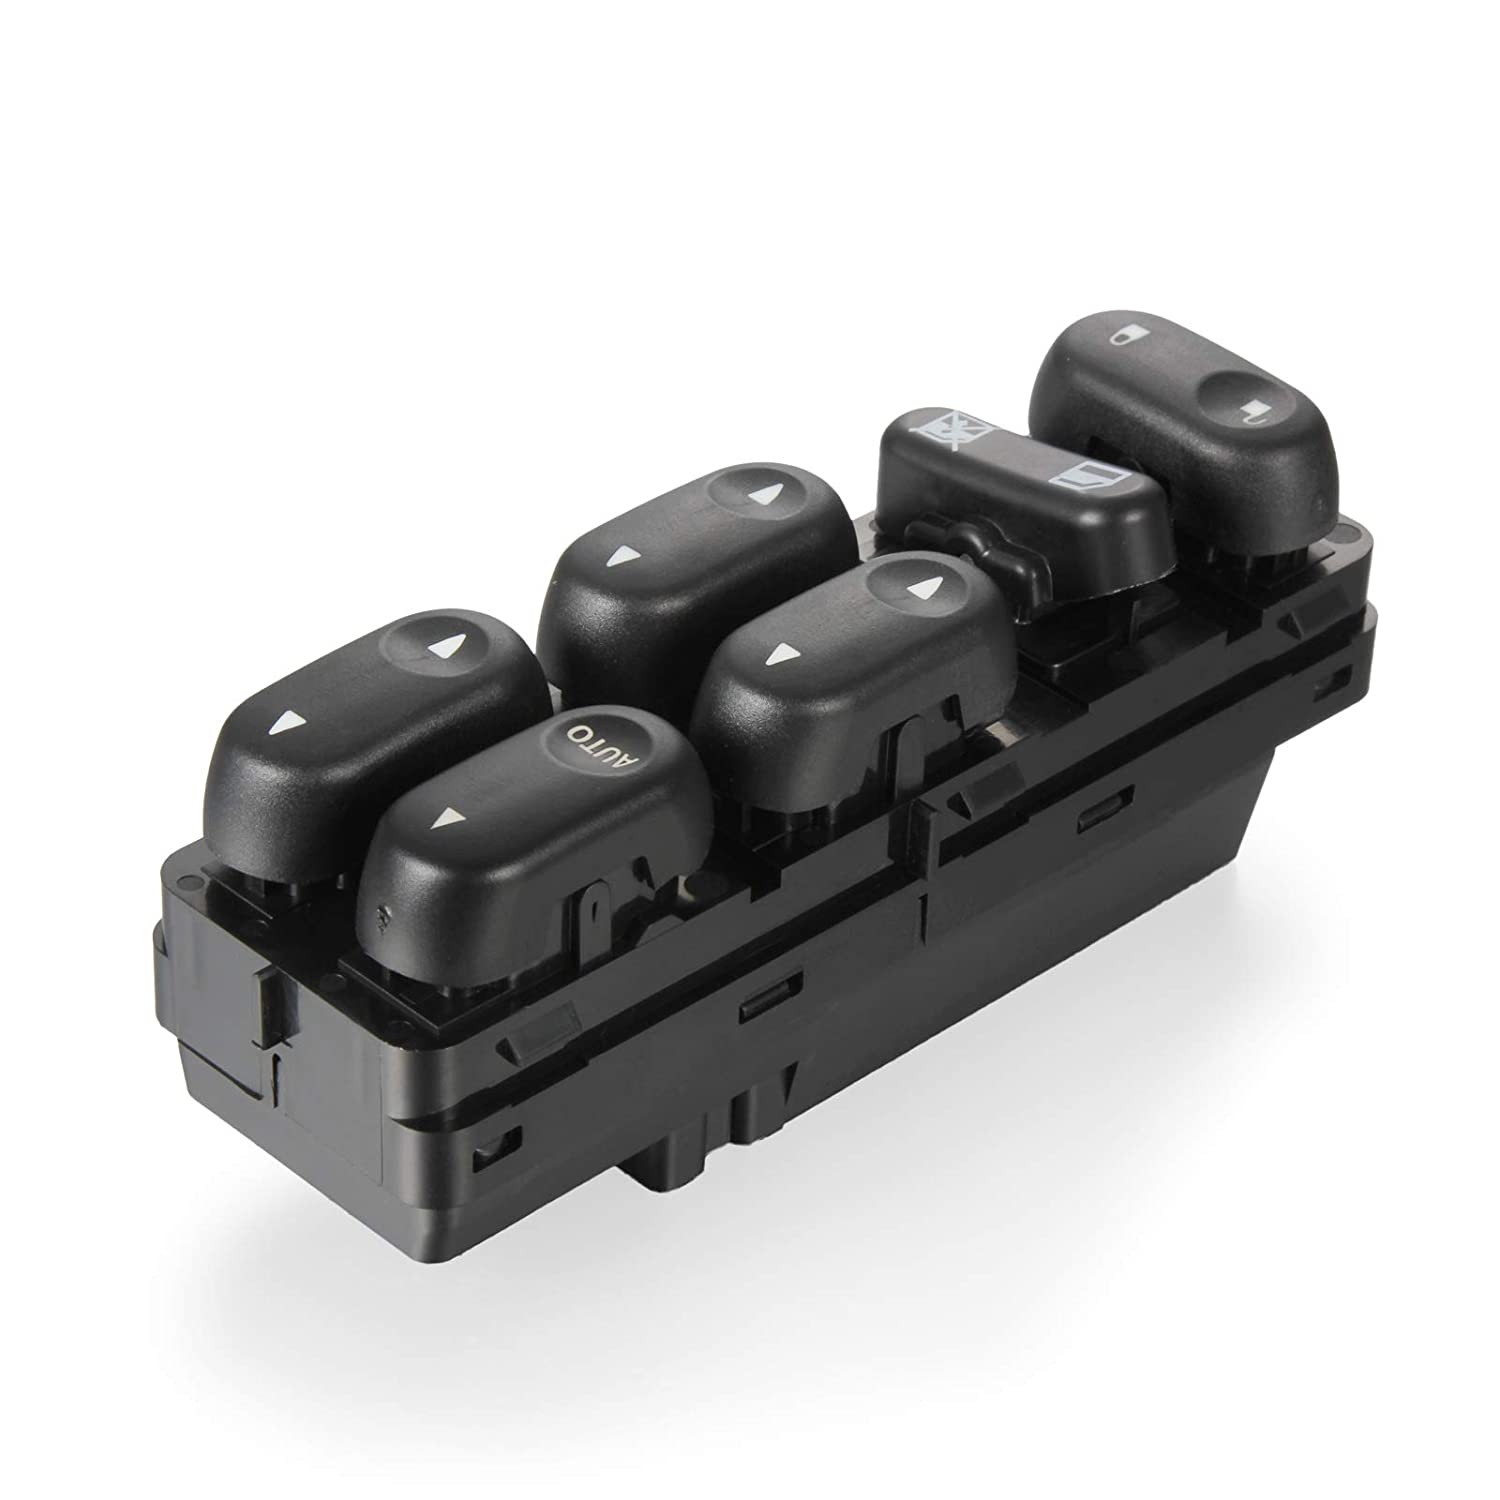 Master Power Window Switch Front Left Driver Side 3L8Z-14529-AAA For 2001-2007 Ford Escape 2001-2006 Mazda Tribute 2005-2007 Mercury Mariner From Madlife Garage